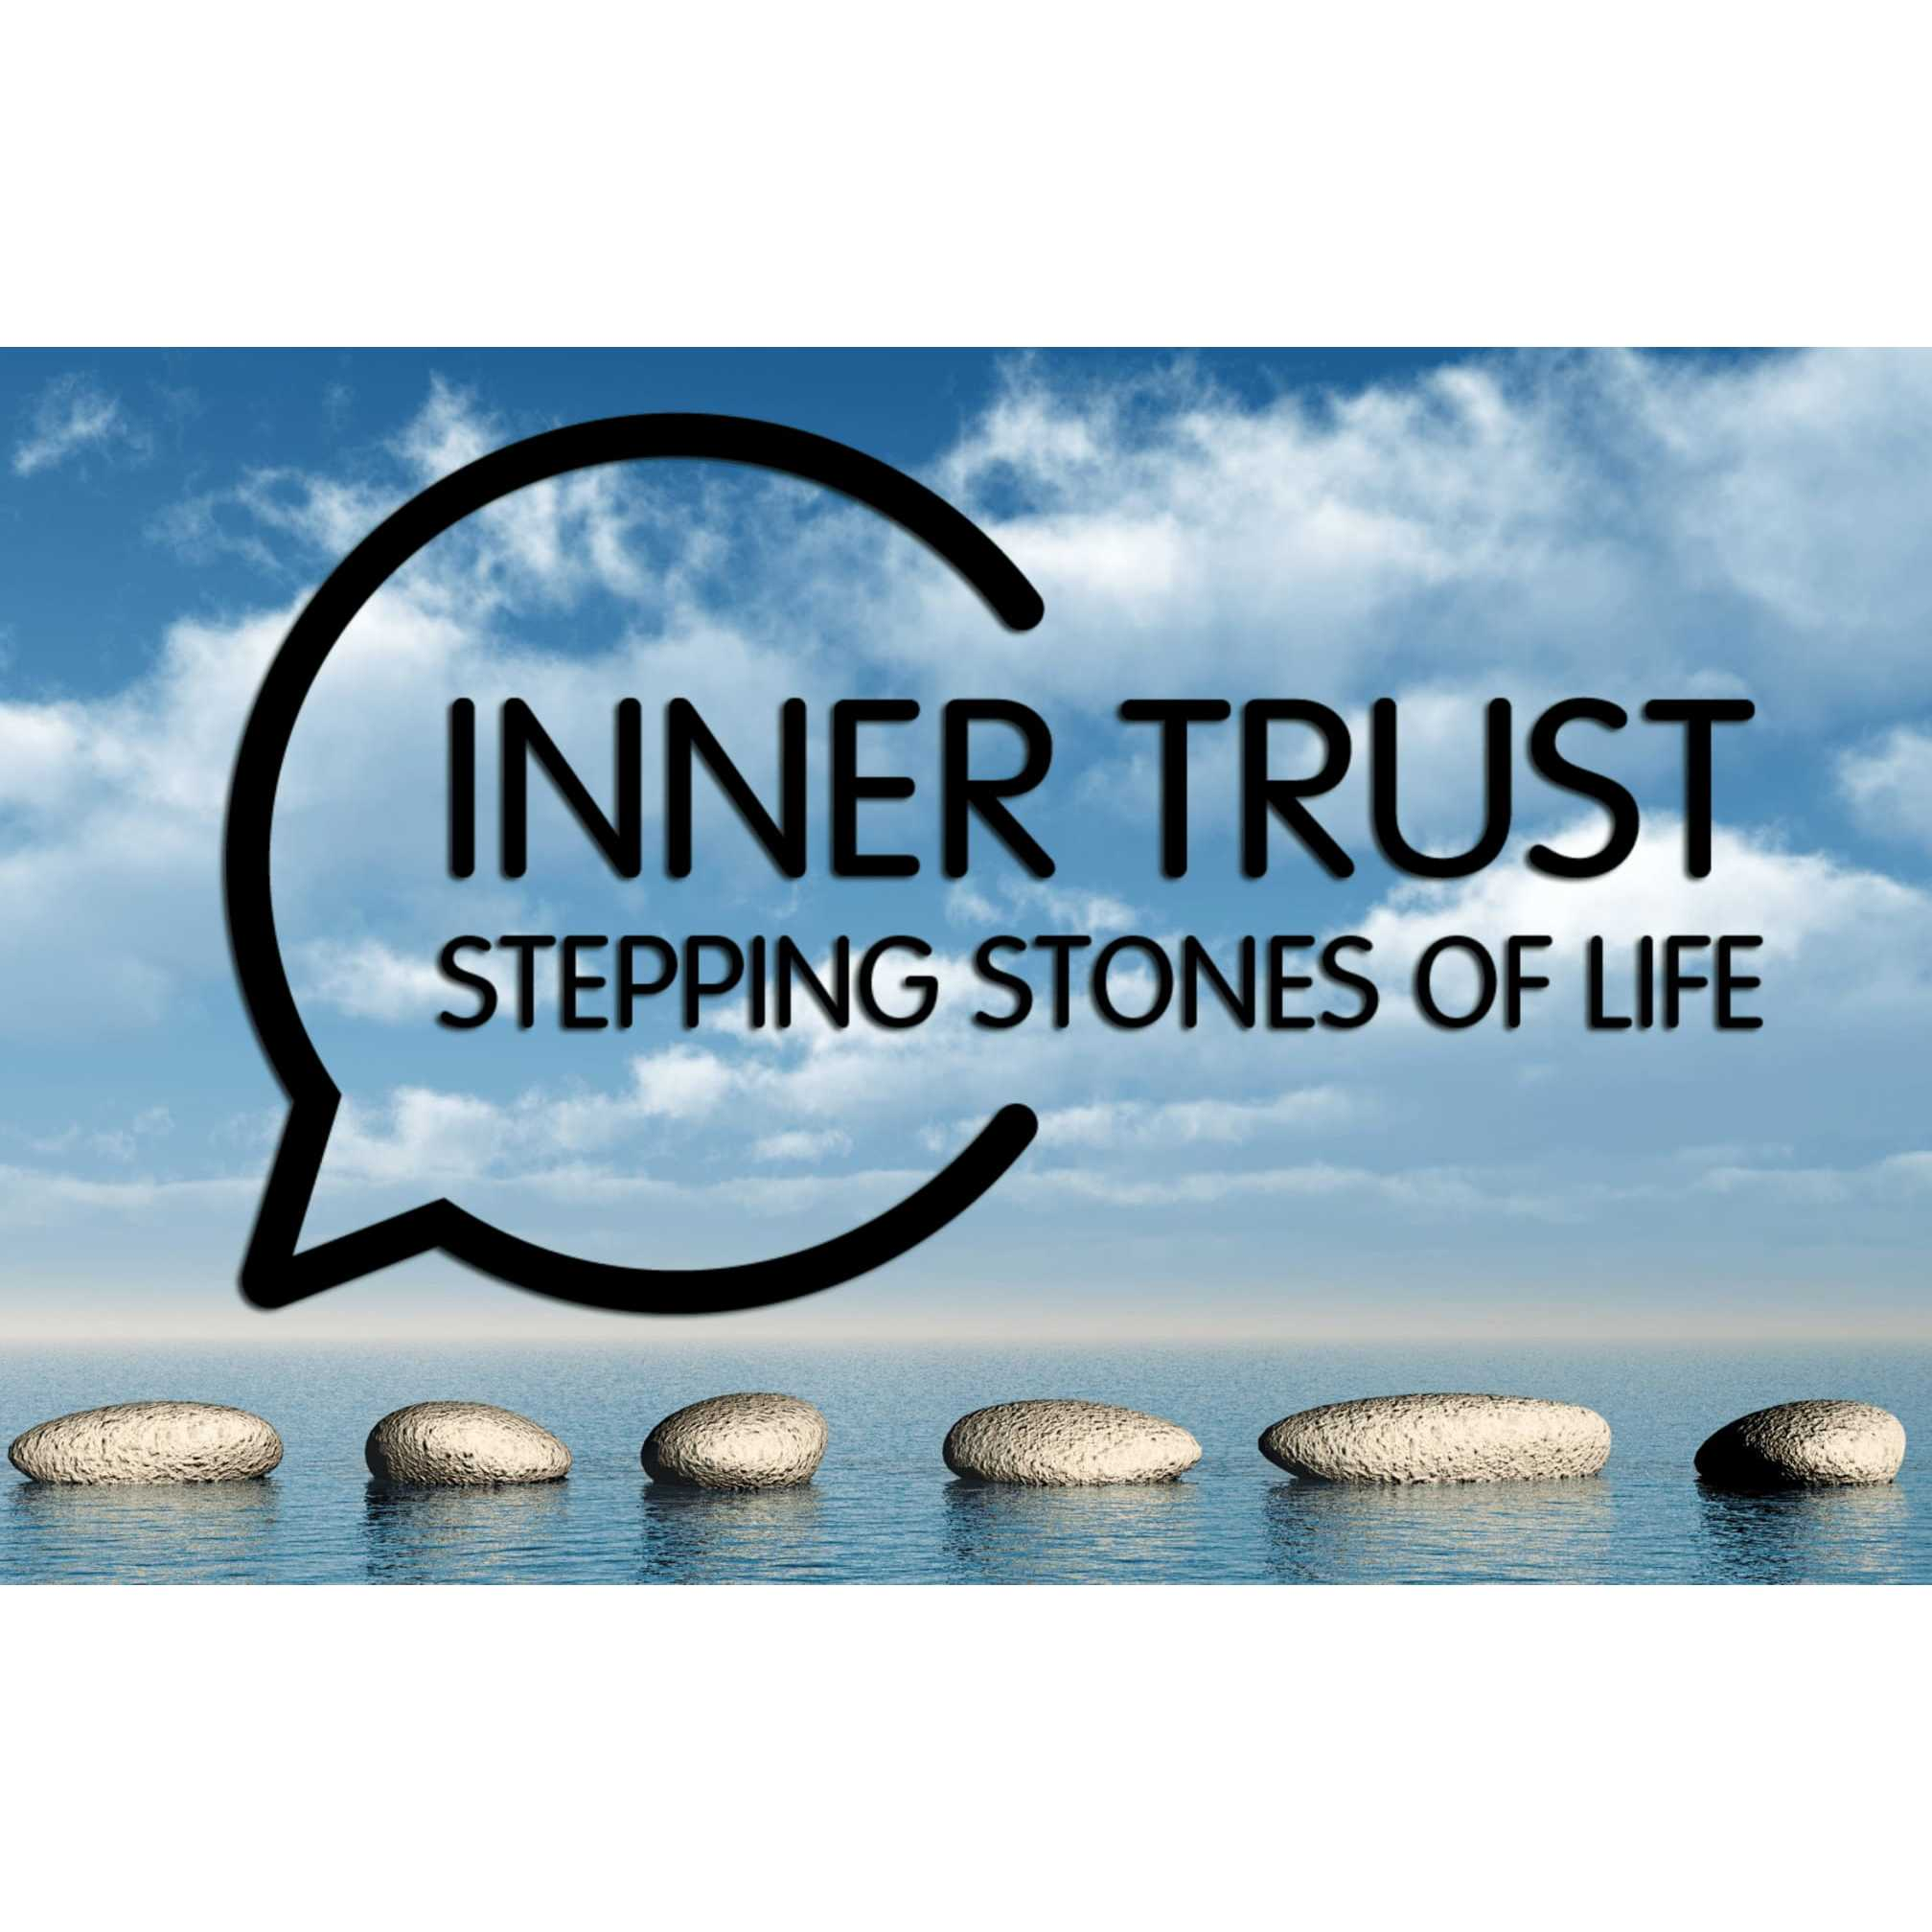 Inner Trust - Nantwich, Cheshire CW5 7NW - 07592 922185 | ShowMeLocal.com